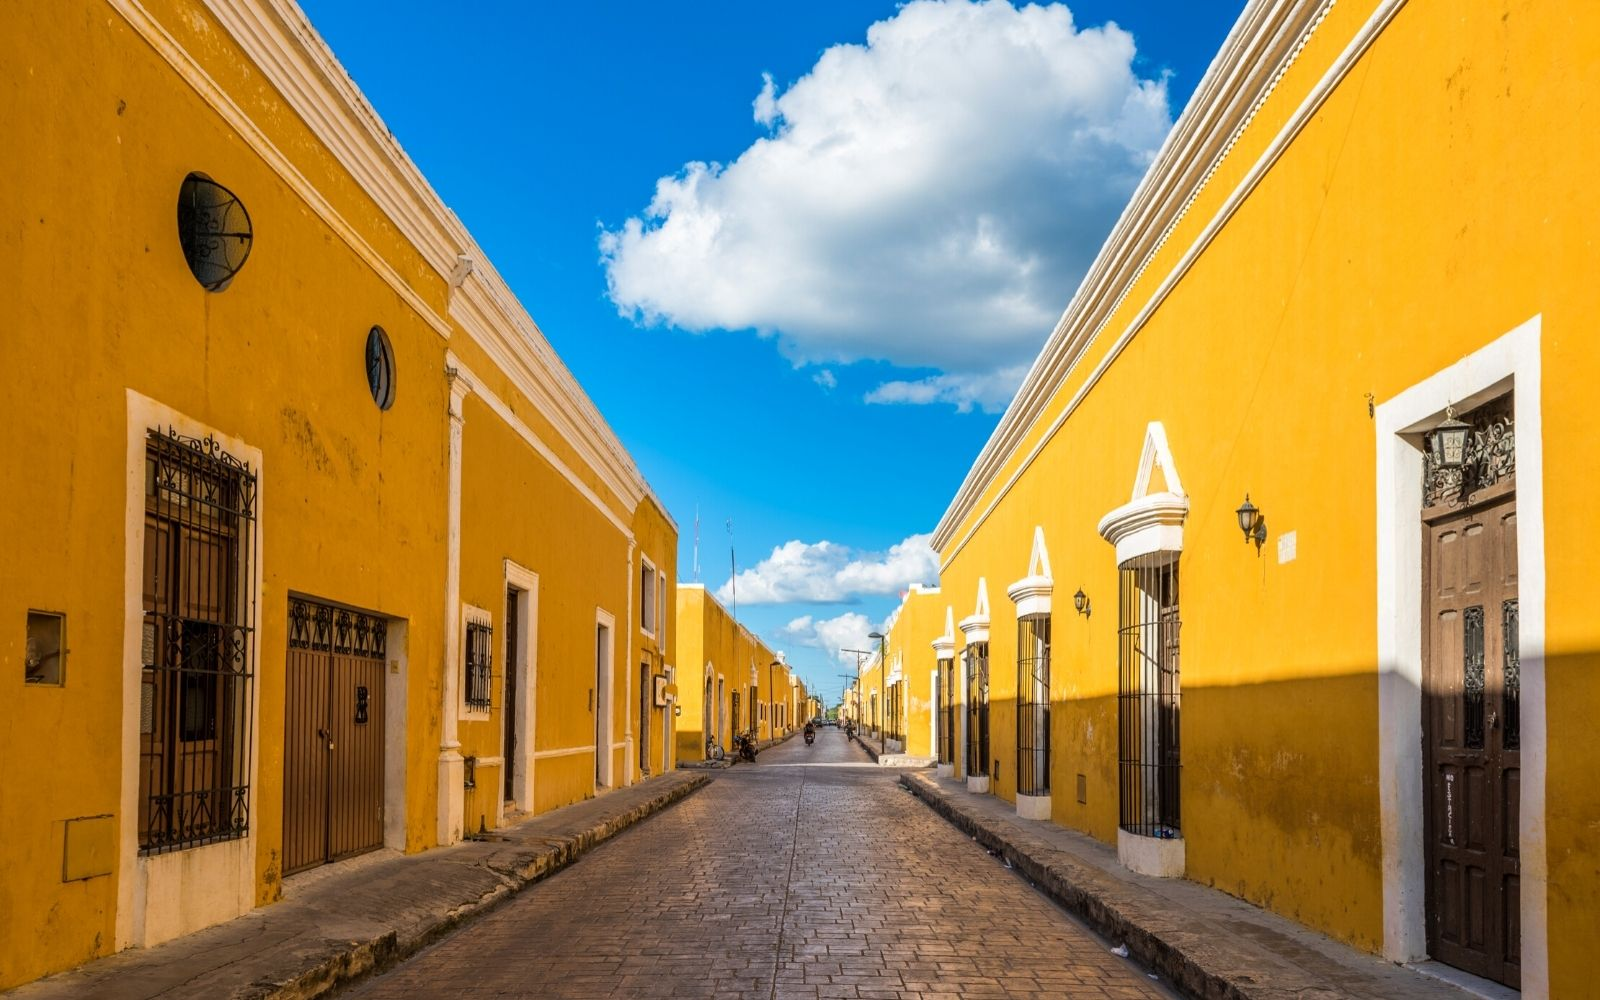 15 Reasons To Visit Mexico (+5 Top Things to Do)